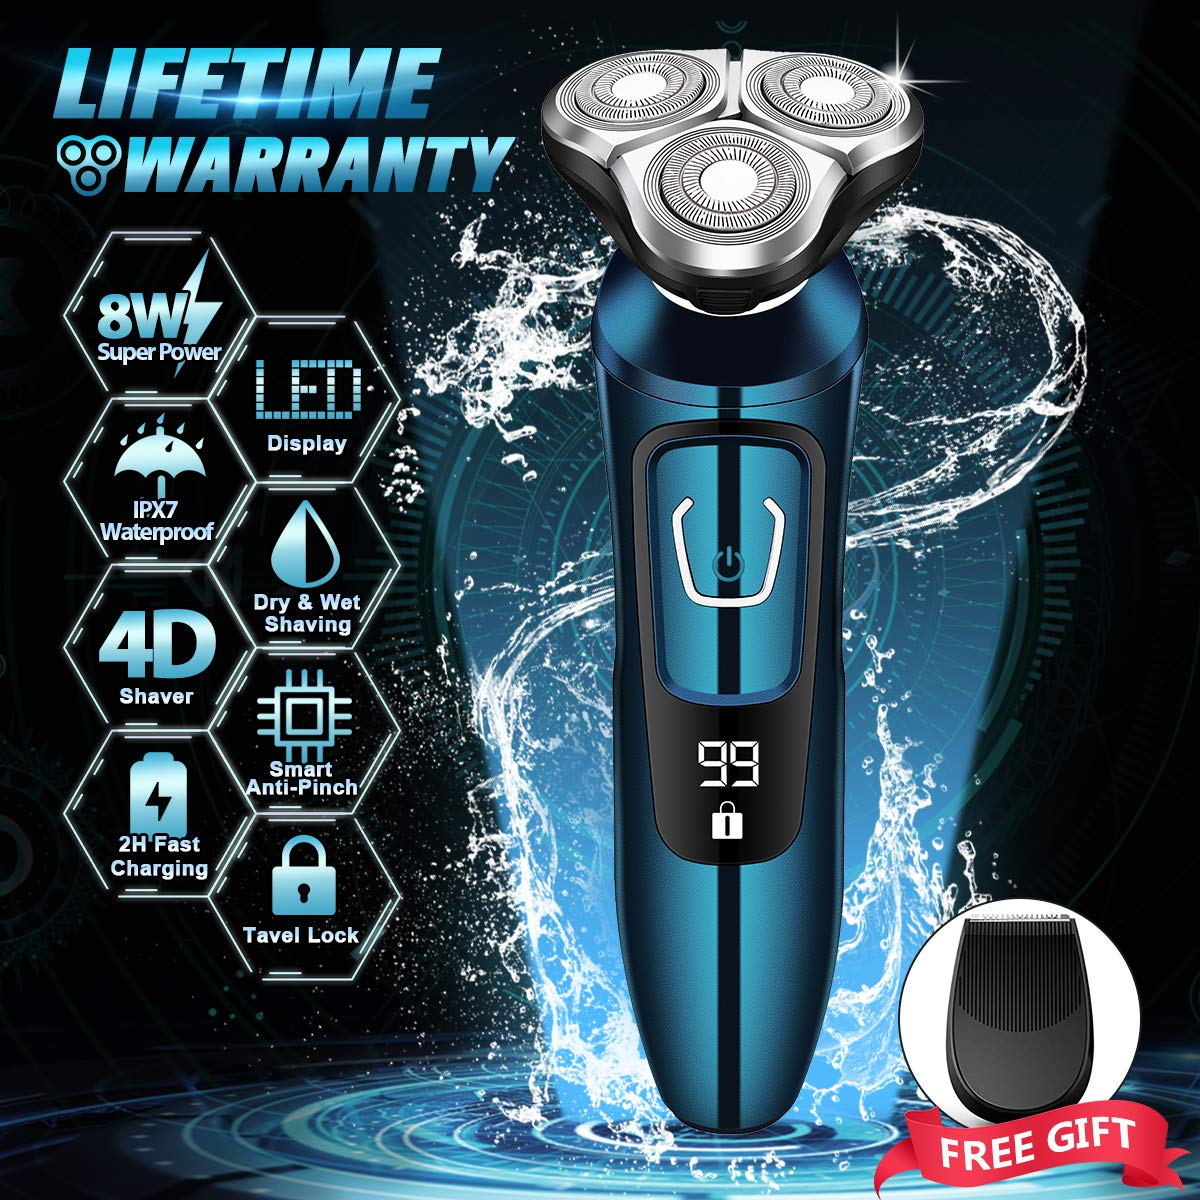 Electric Razor, Electric Shavers for Men, Dry Wet Waterproof Mens rotary facial shaver, Portable Face Shaver Cordless Travel USB Rechargeable with Beard Trimmer LED Display for Shaving Husband Dad by Vifycim